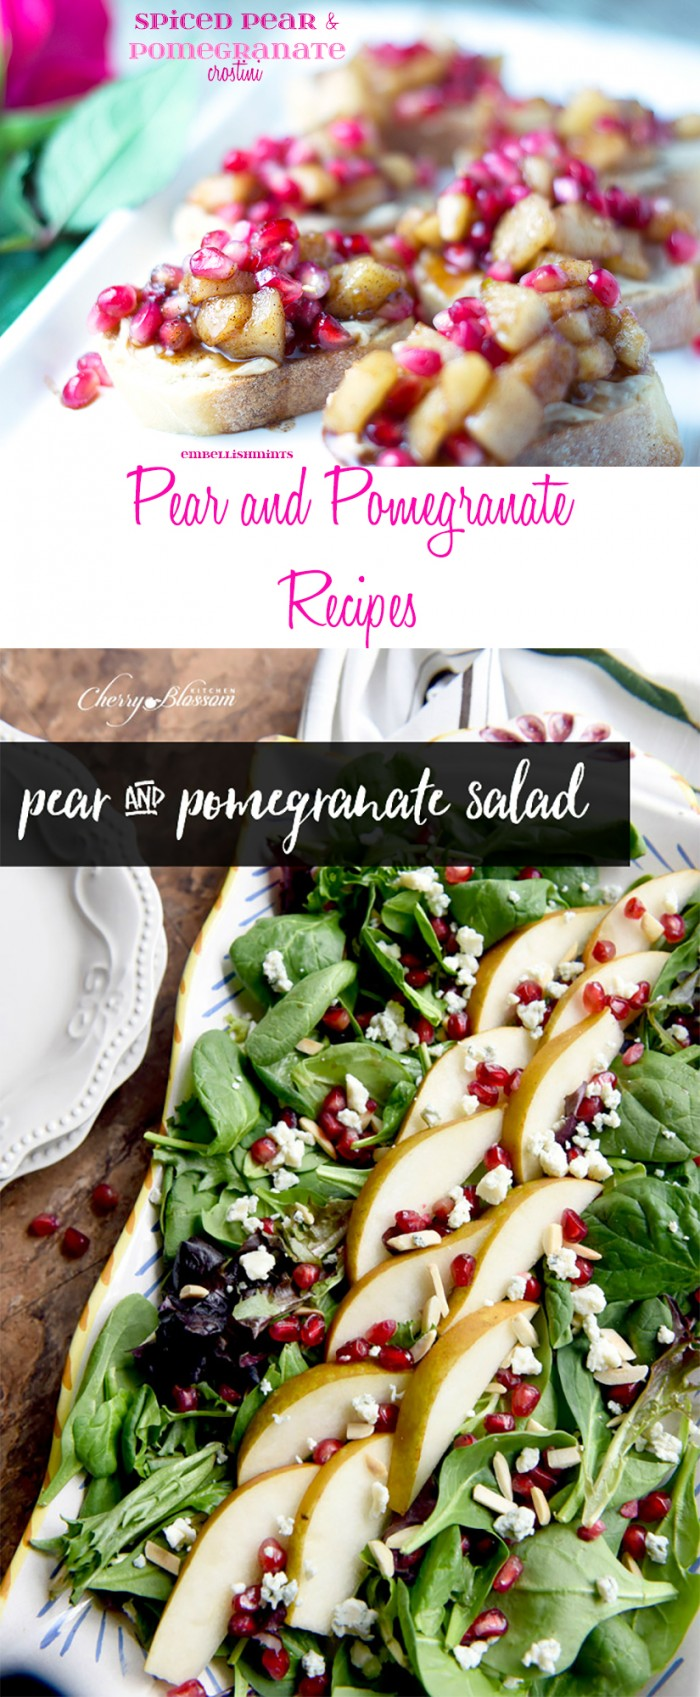 Pear-and-Pomegranate-Recipe-Ideas